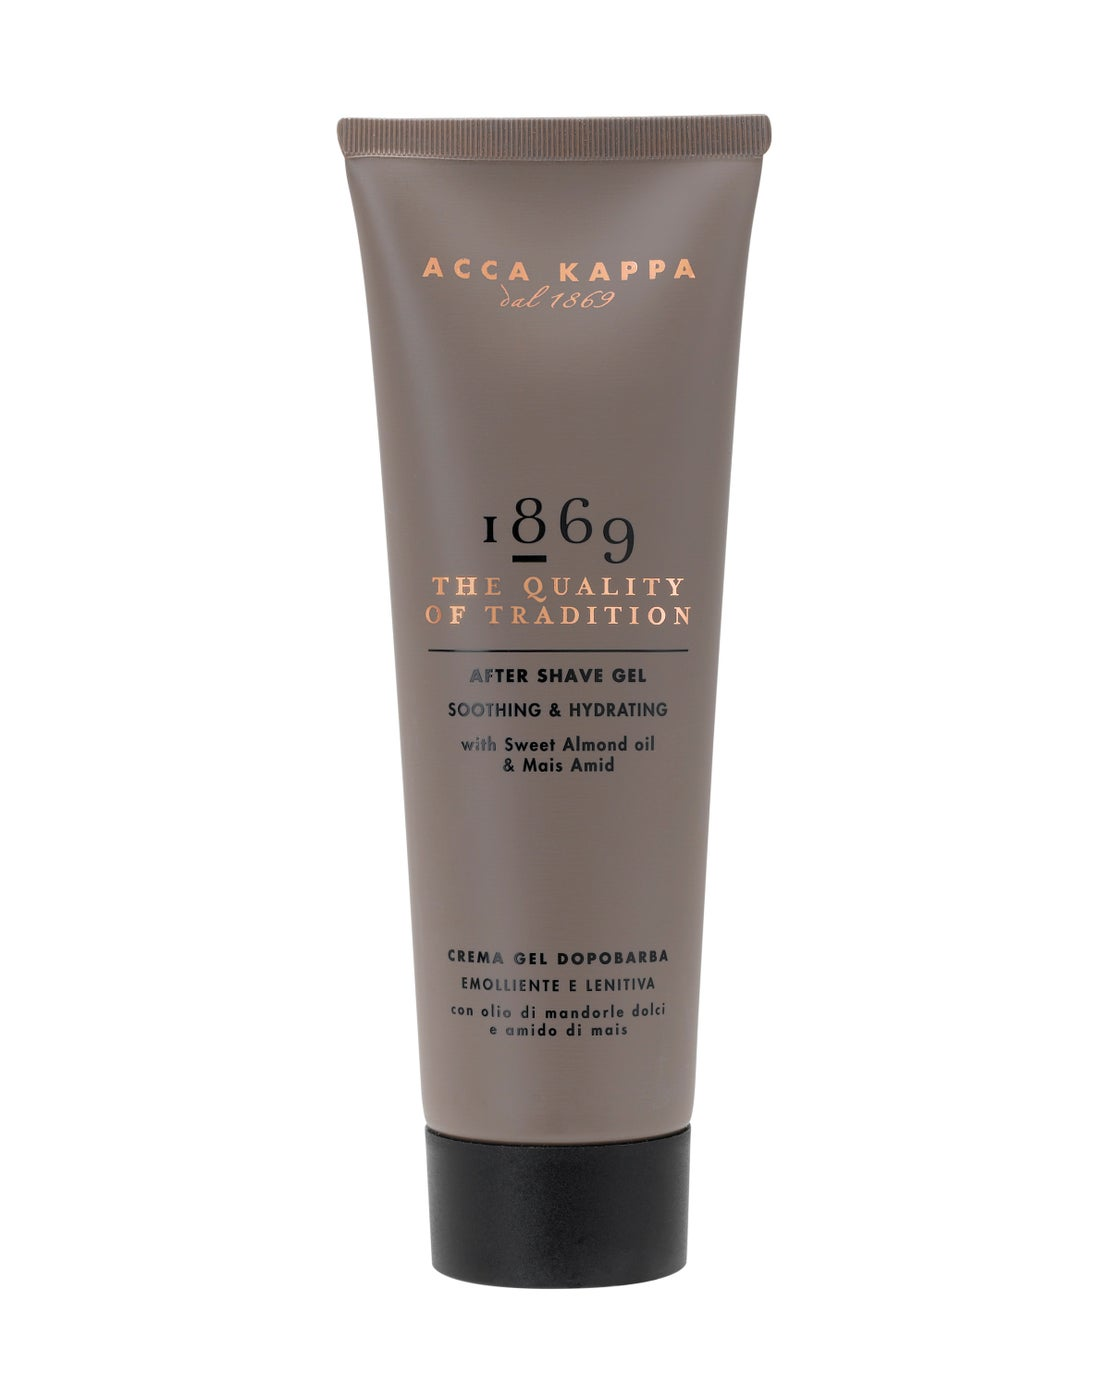 Acca Kappa - 1869 After Shave Gel (125ml)